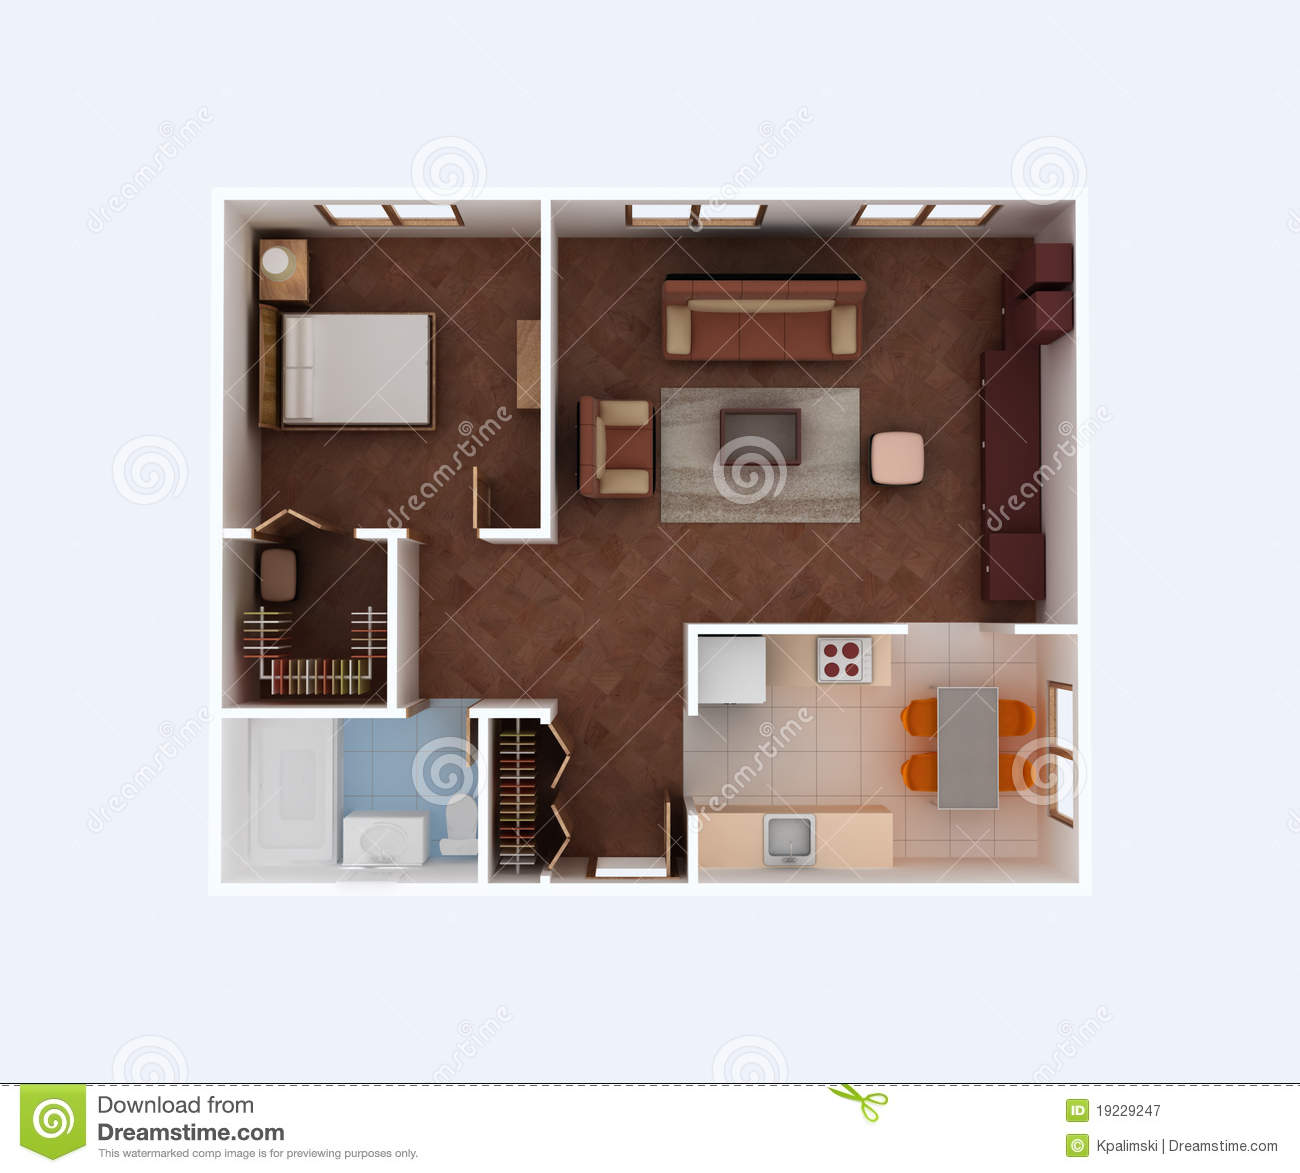 Home Floor Plan. Housing Project 3d Blueprint. Stock